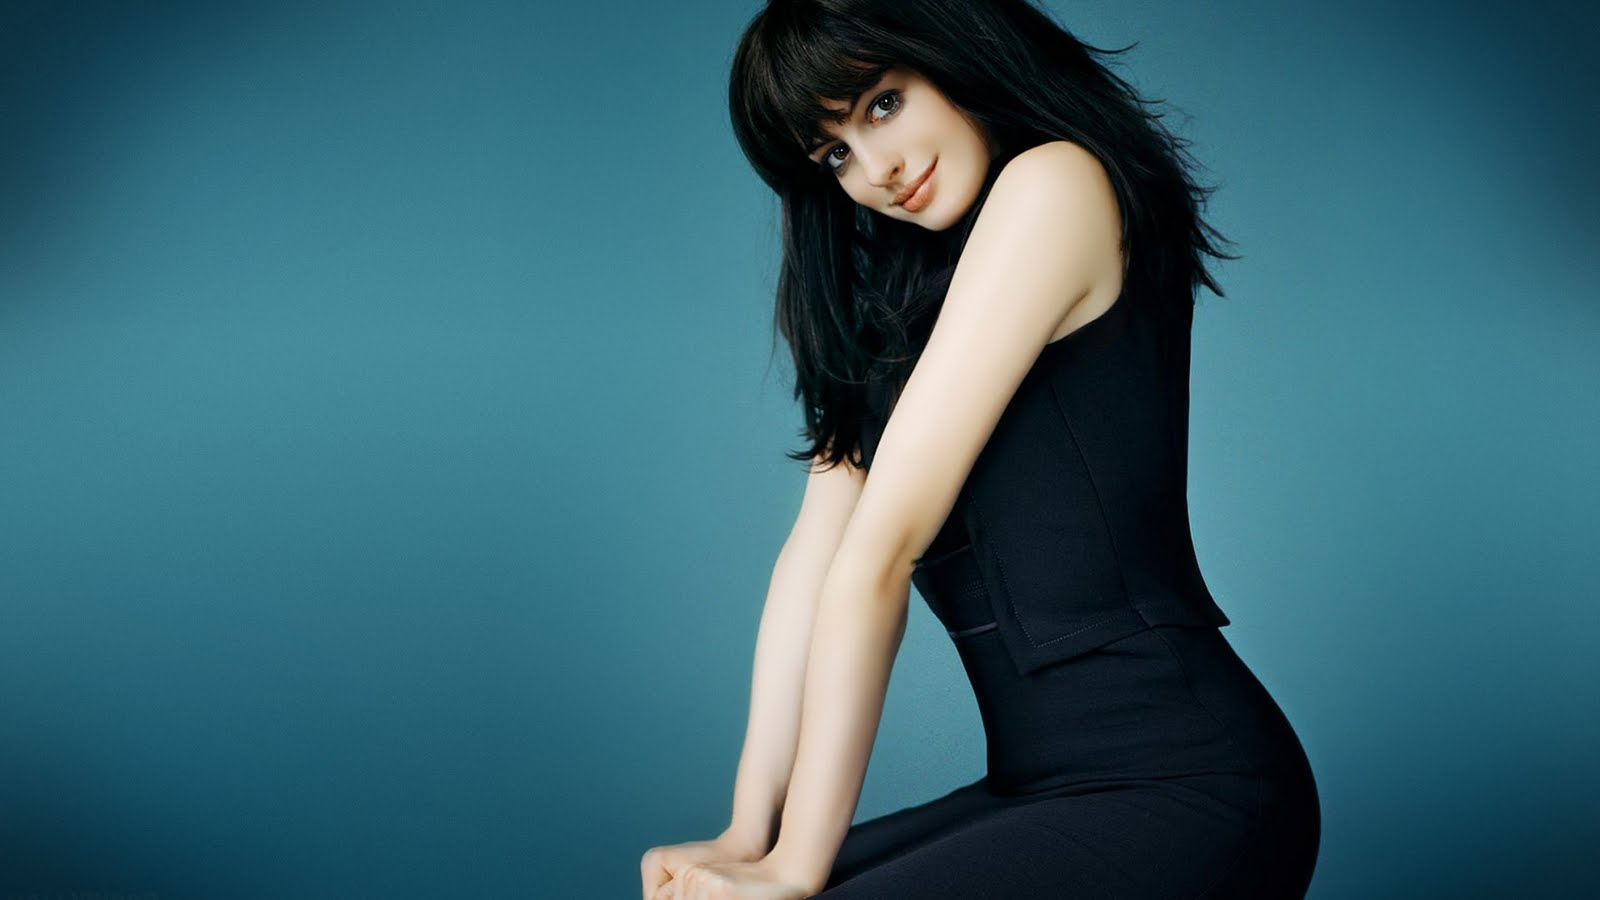 anne-hathaway-1920x1080-wallpaper-4006.j